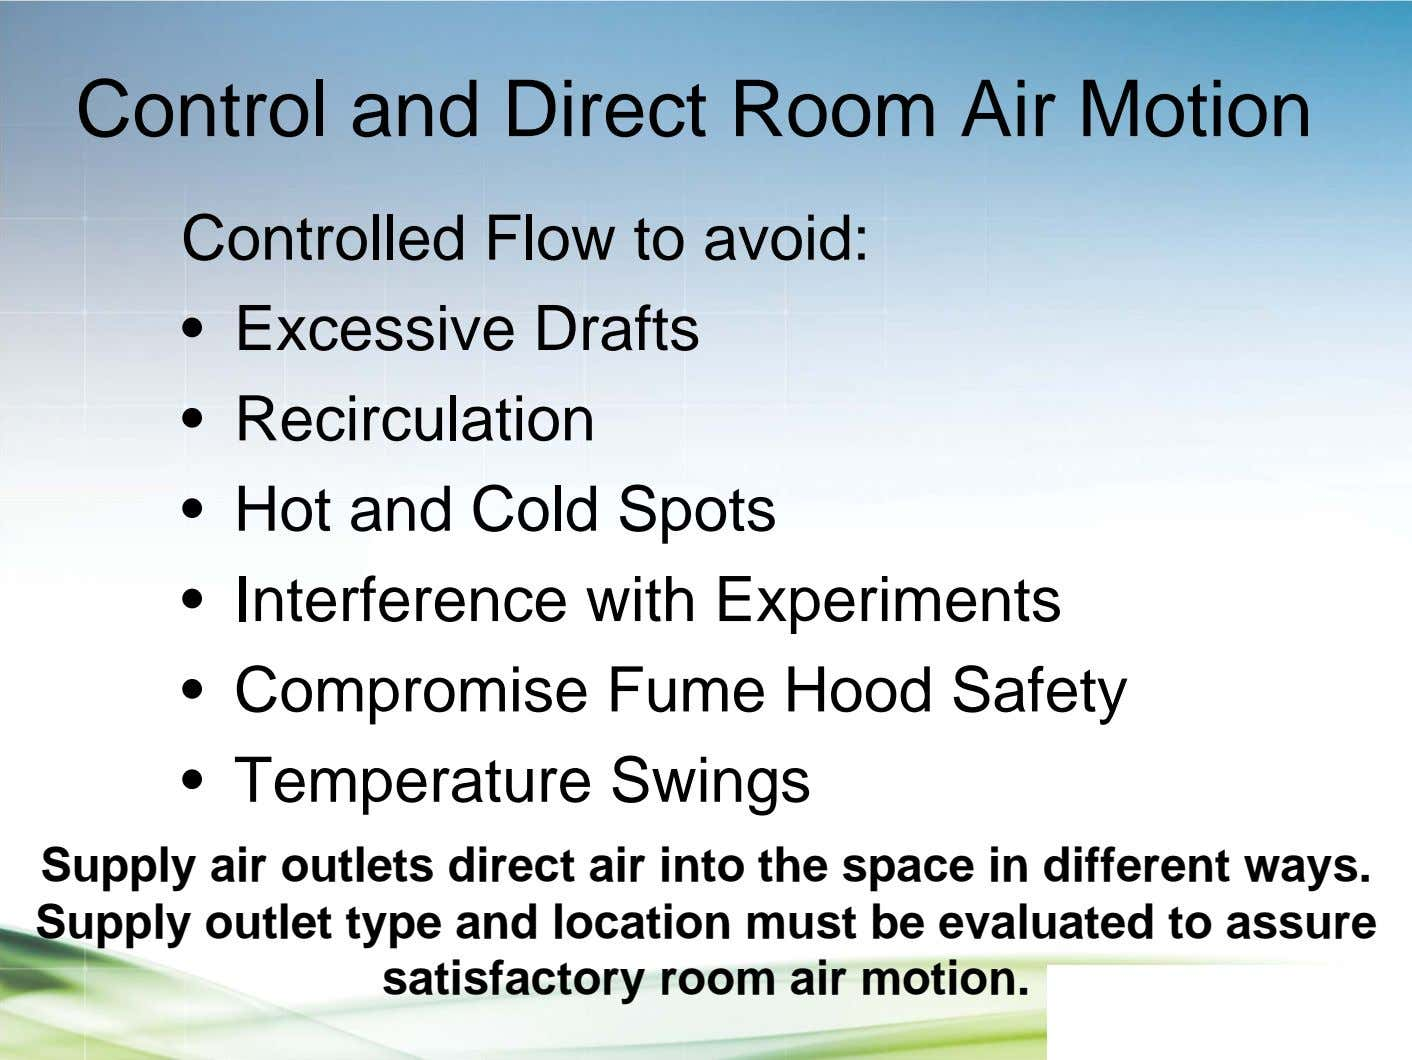 Control and Direct Room Air Motion Controlled Flow to avoid: • Excessive Drafts • Recirculation